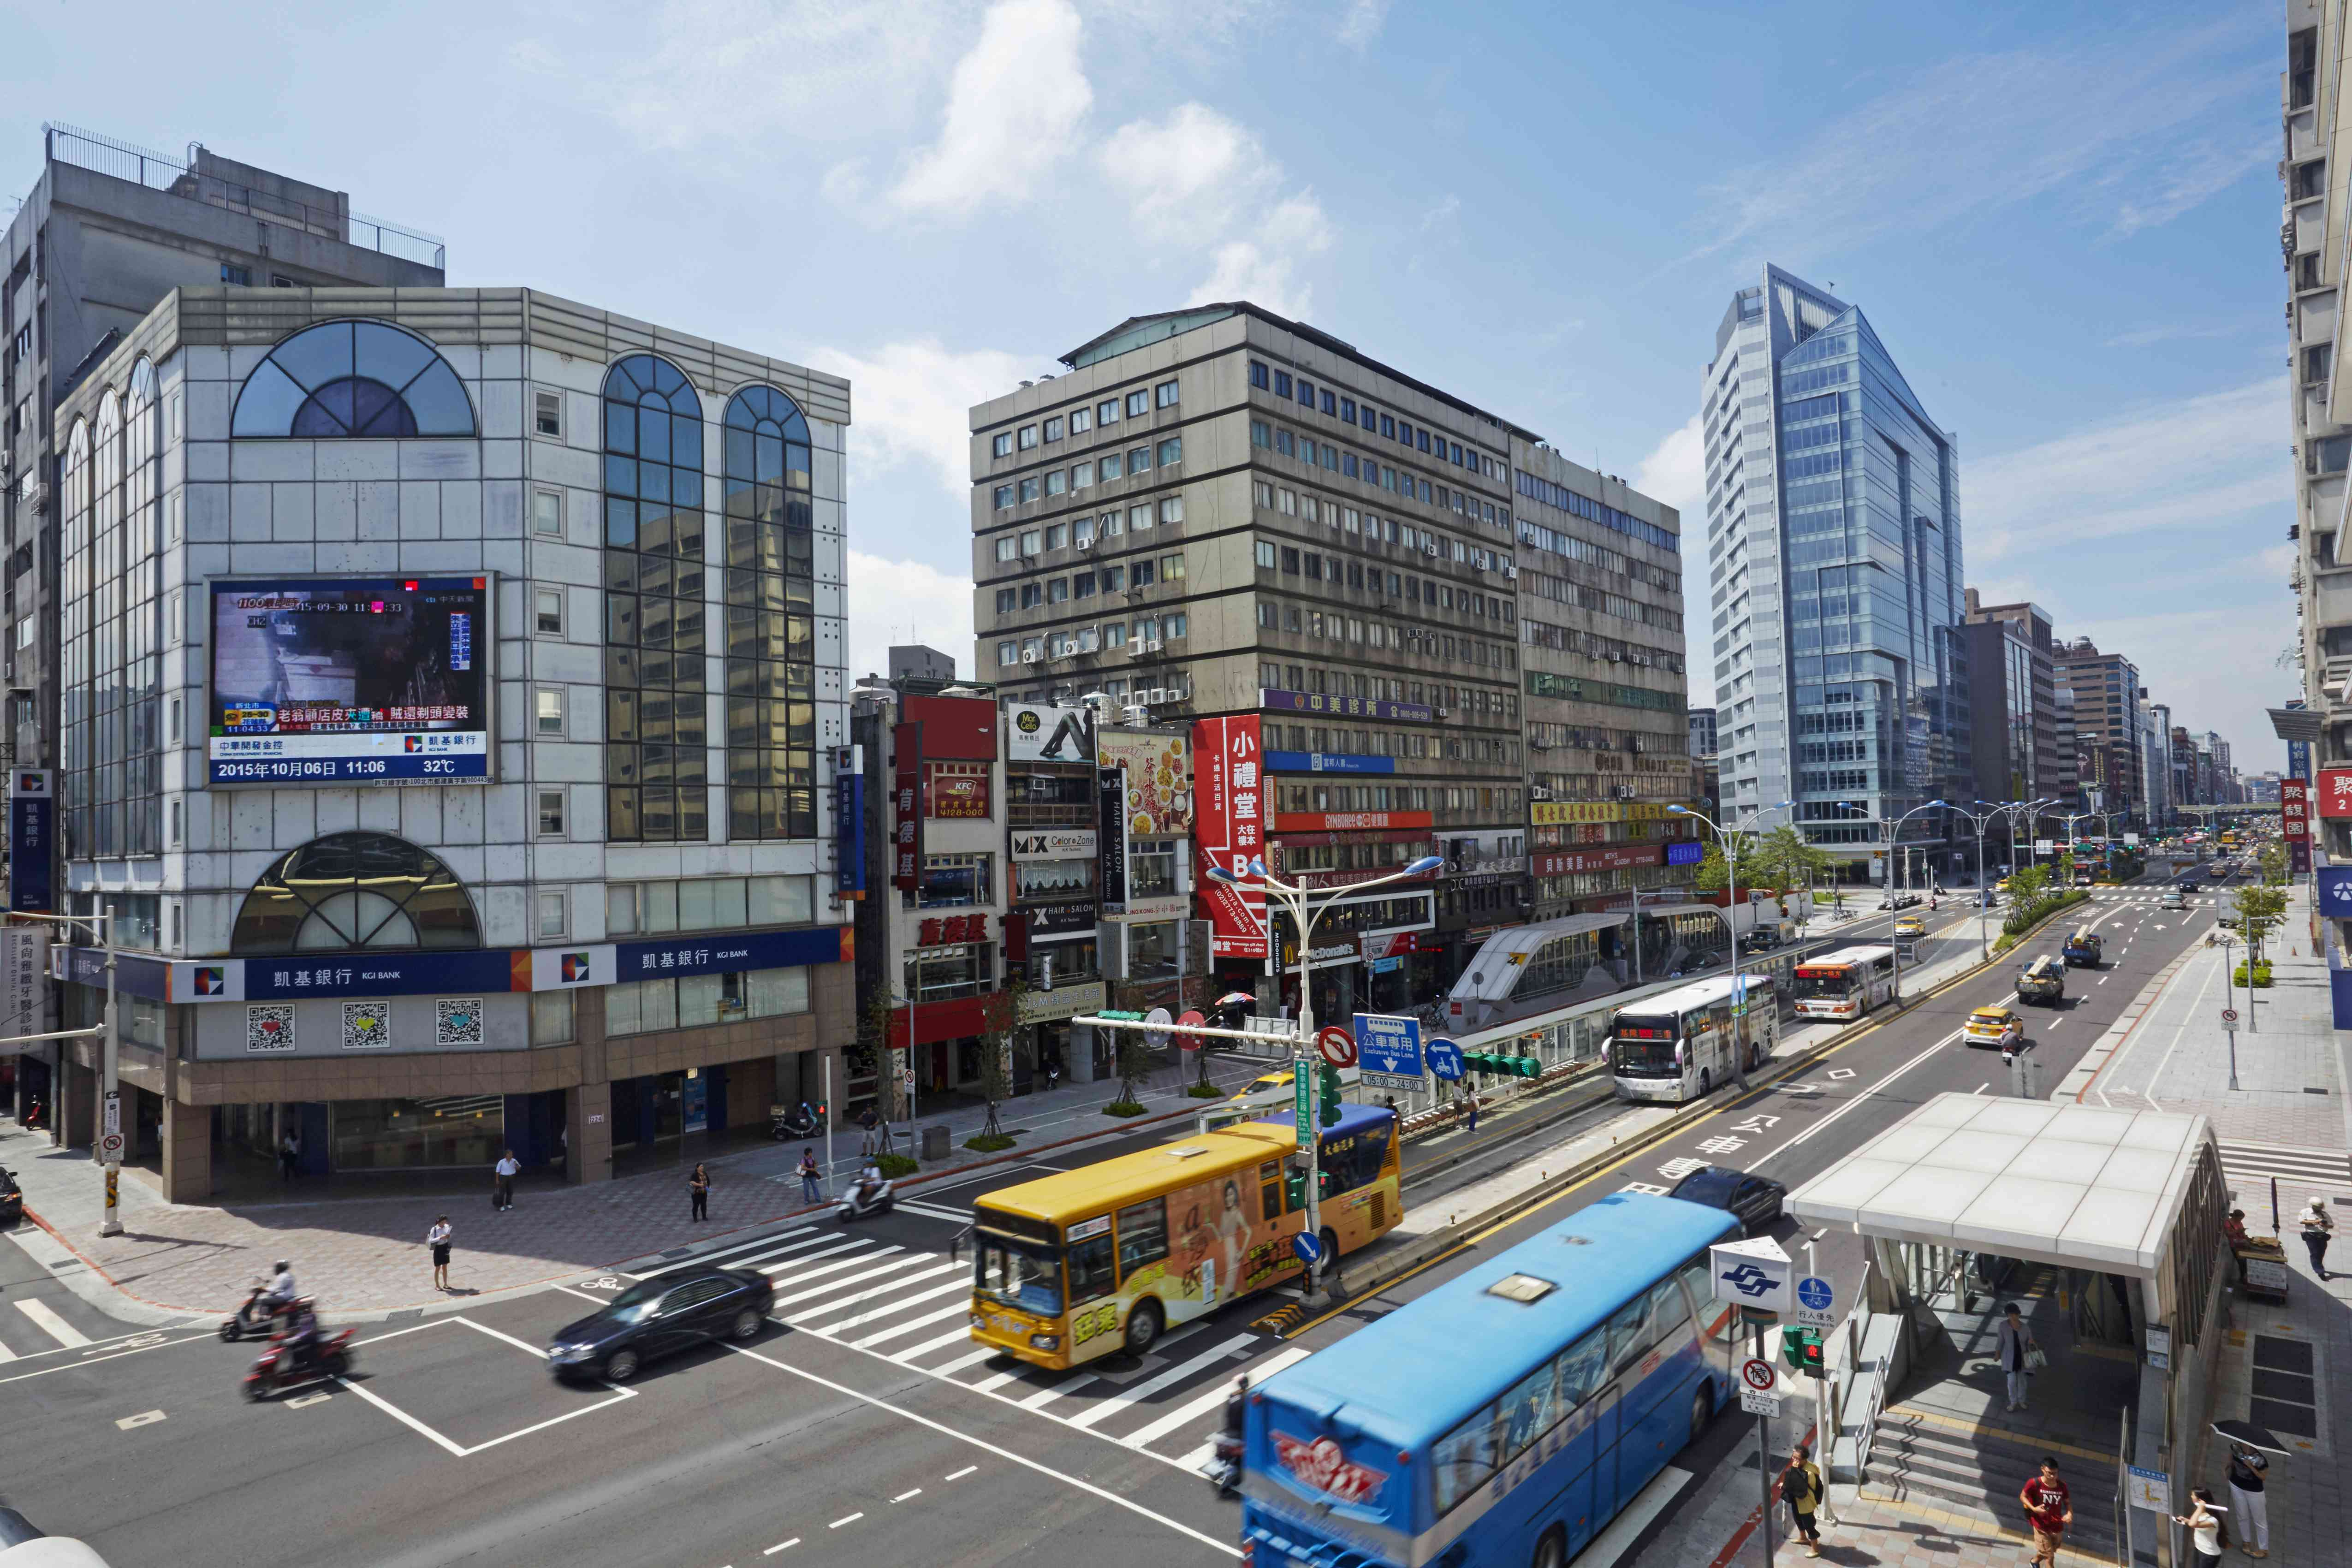 Elevated view of Nanjing East Road in Taipei